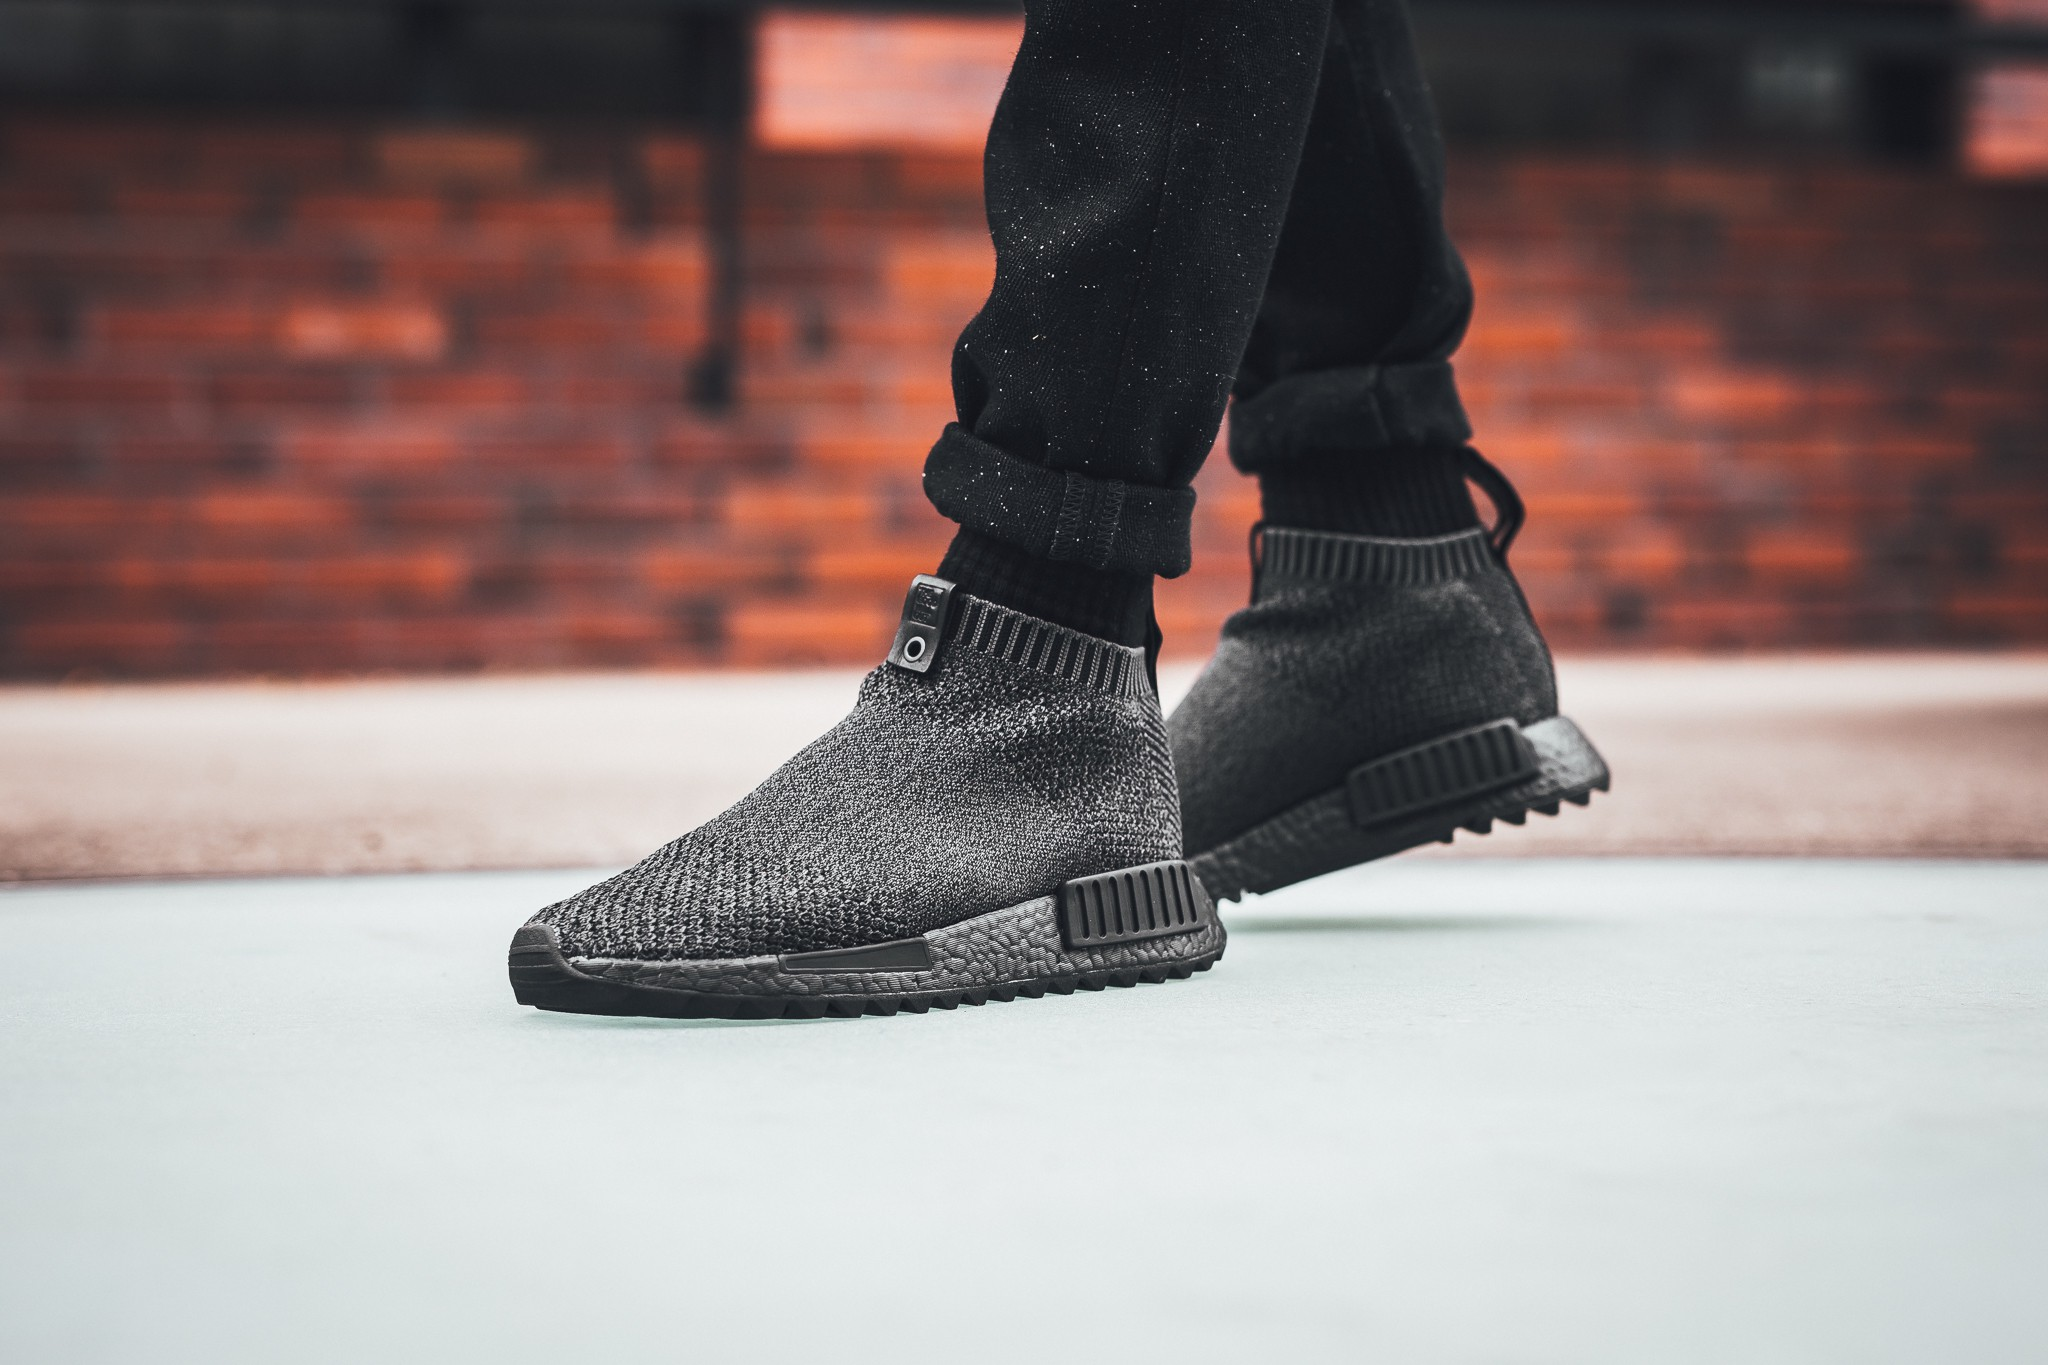 ecc4652b93b7 The Good Will Out x adidas NMD CS1